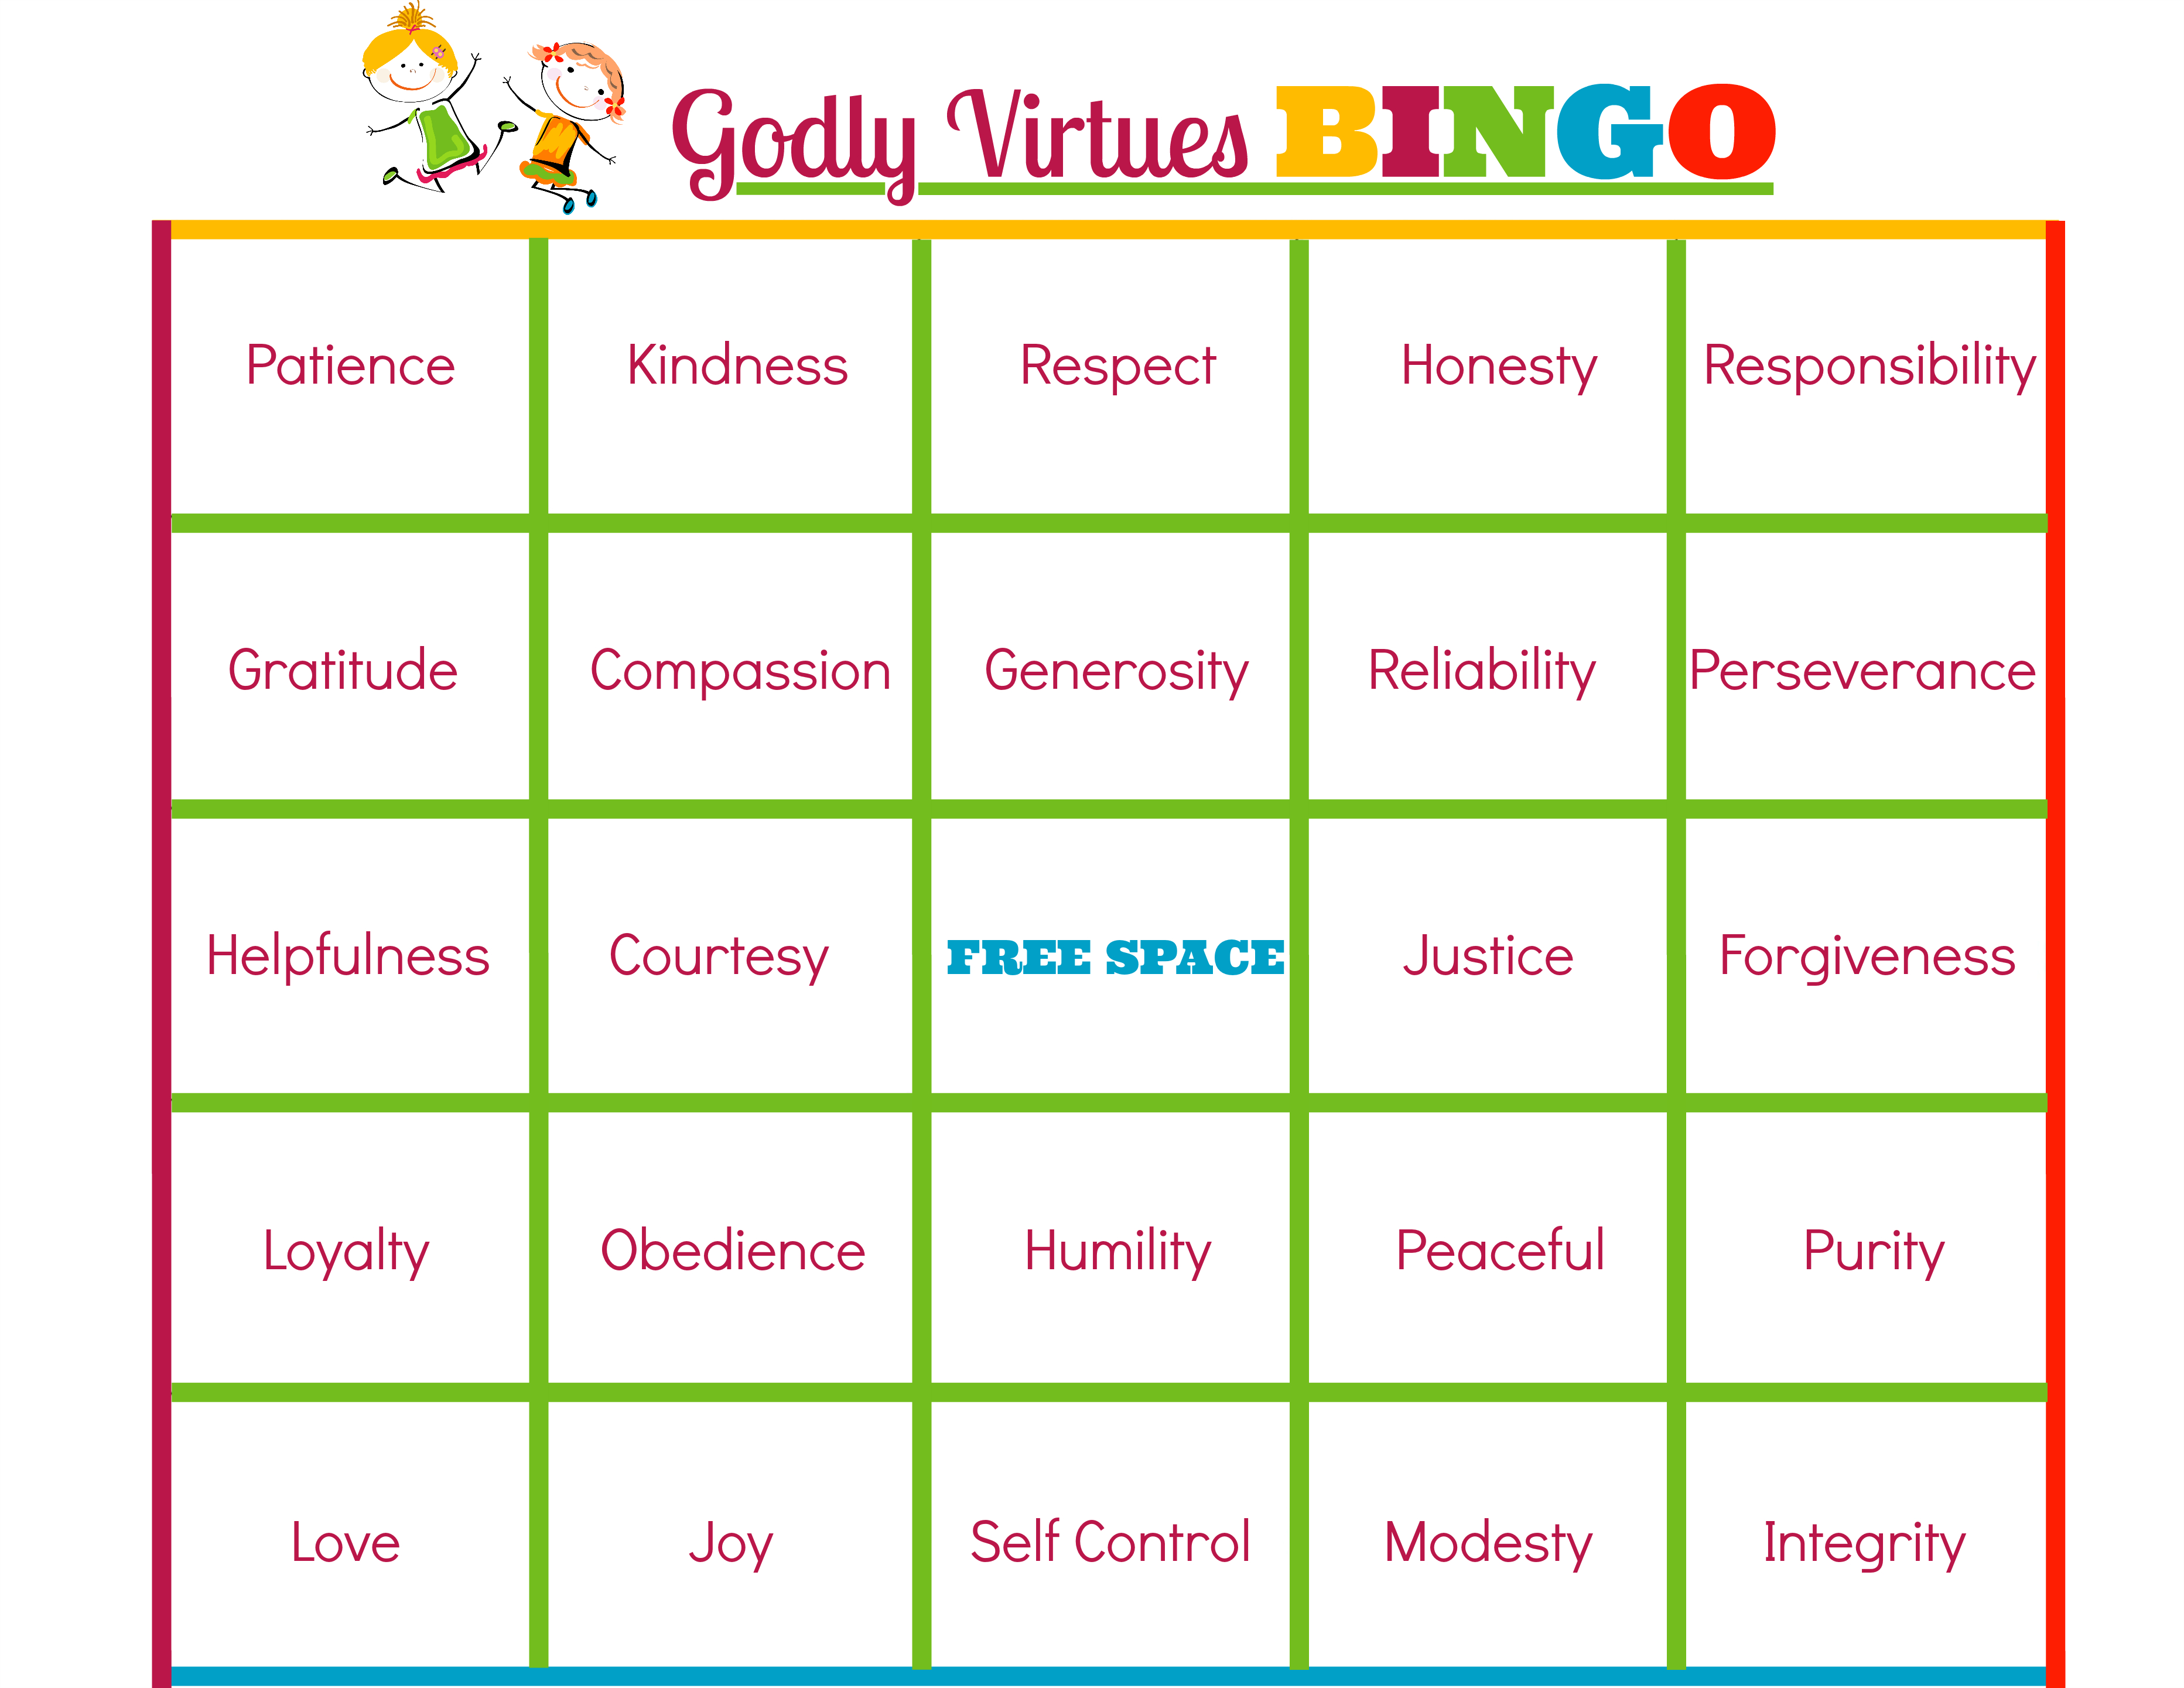 Bible Bingo Printable (91+ Images In Collection) Page 1 - Free Printable Bible Bingo For Preschoolers